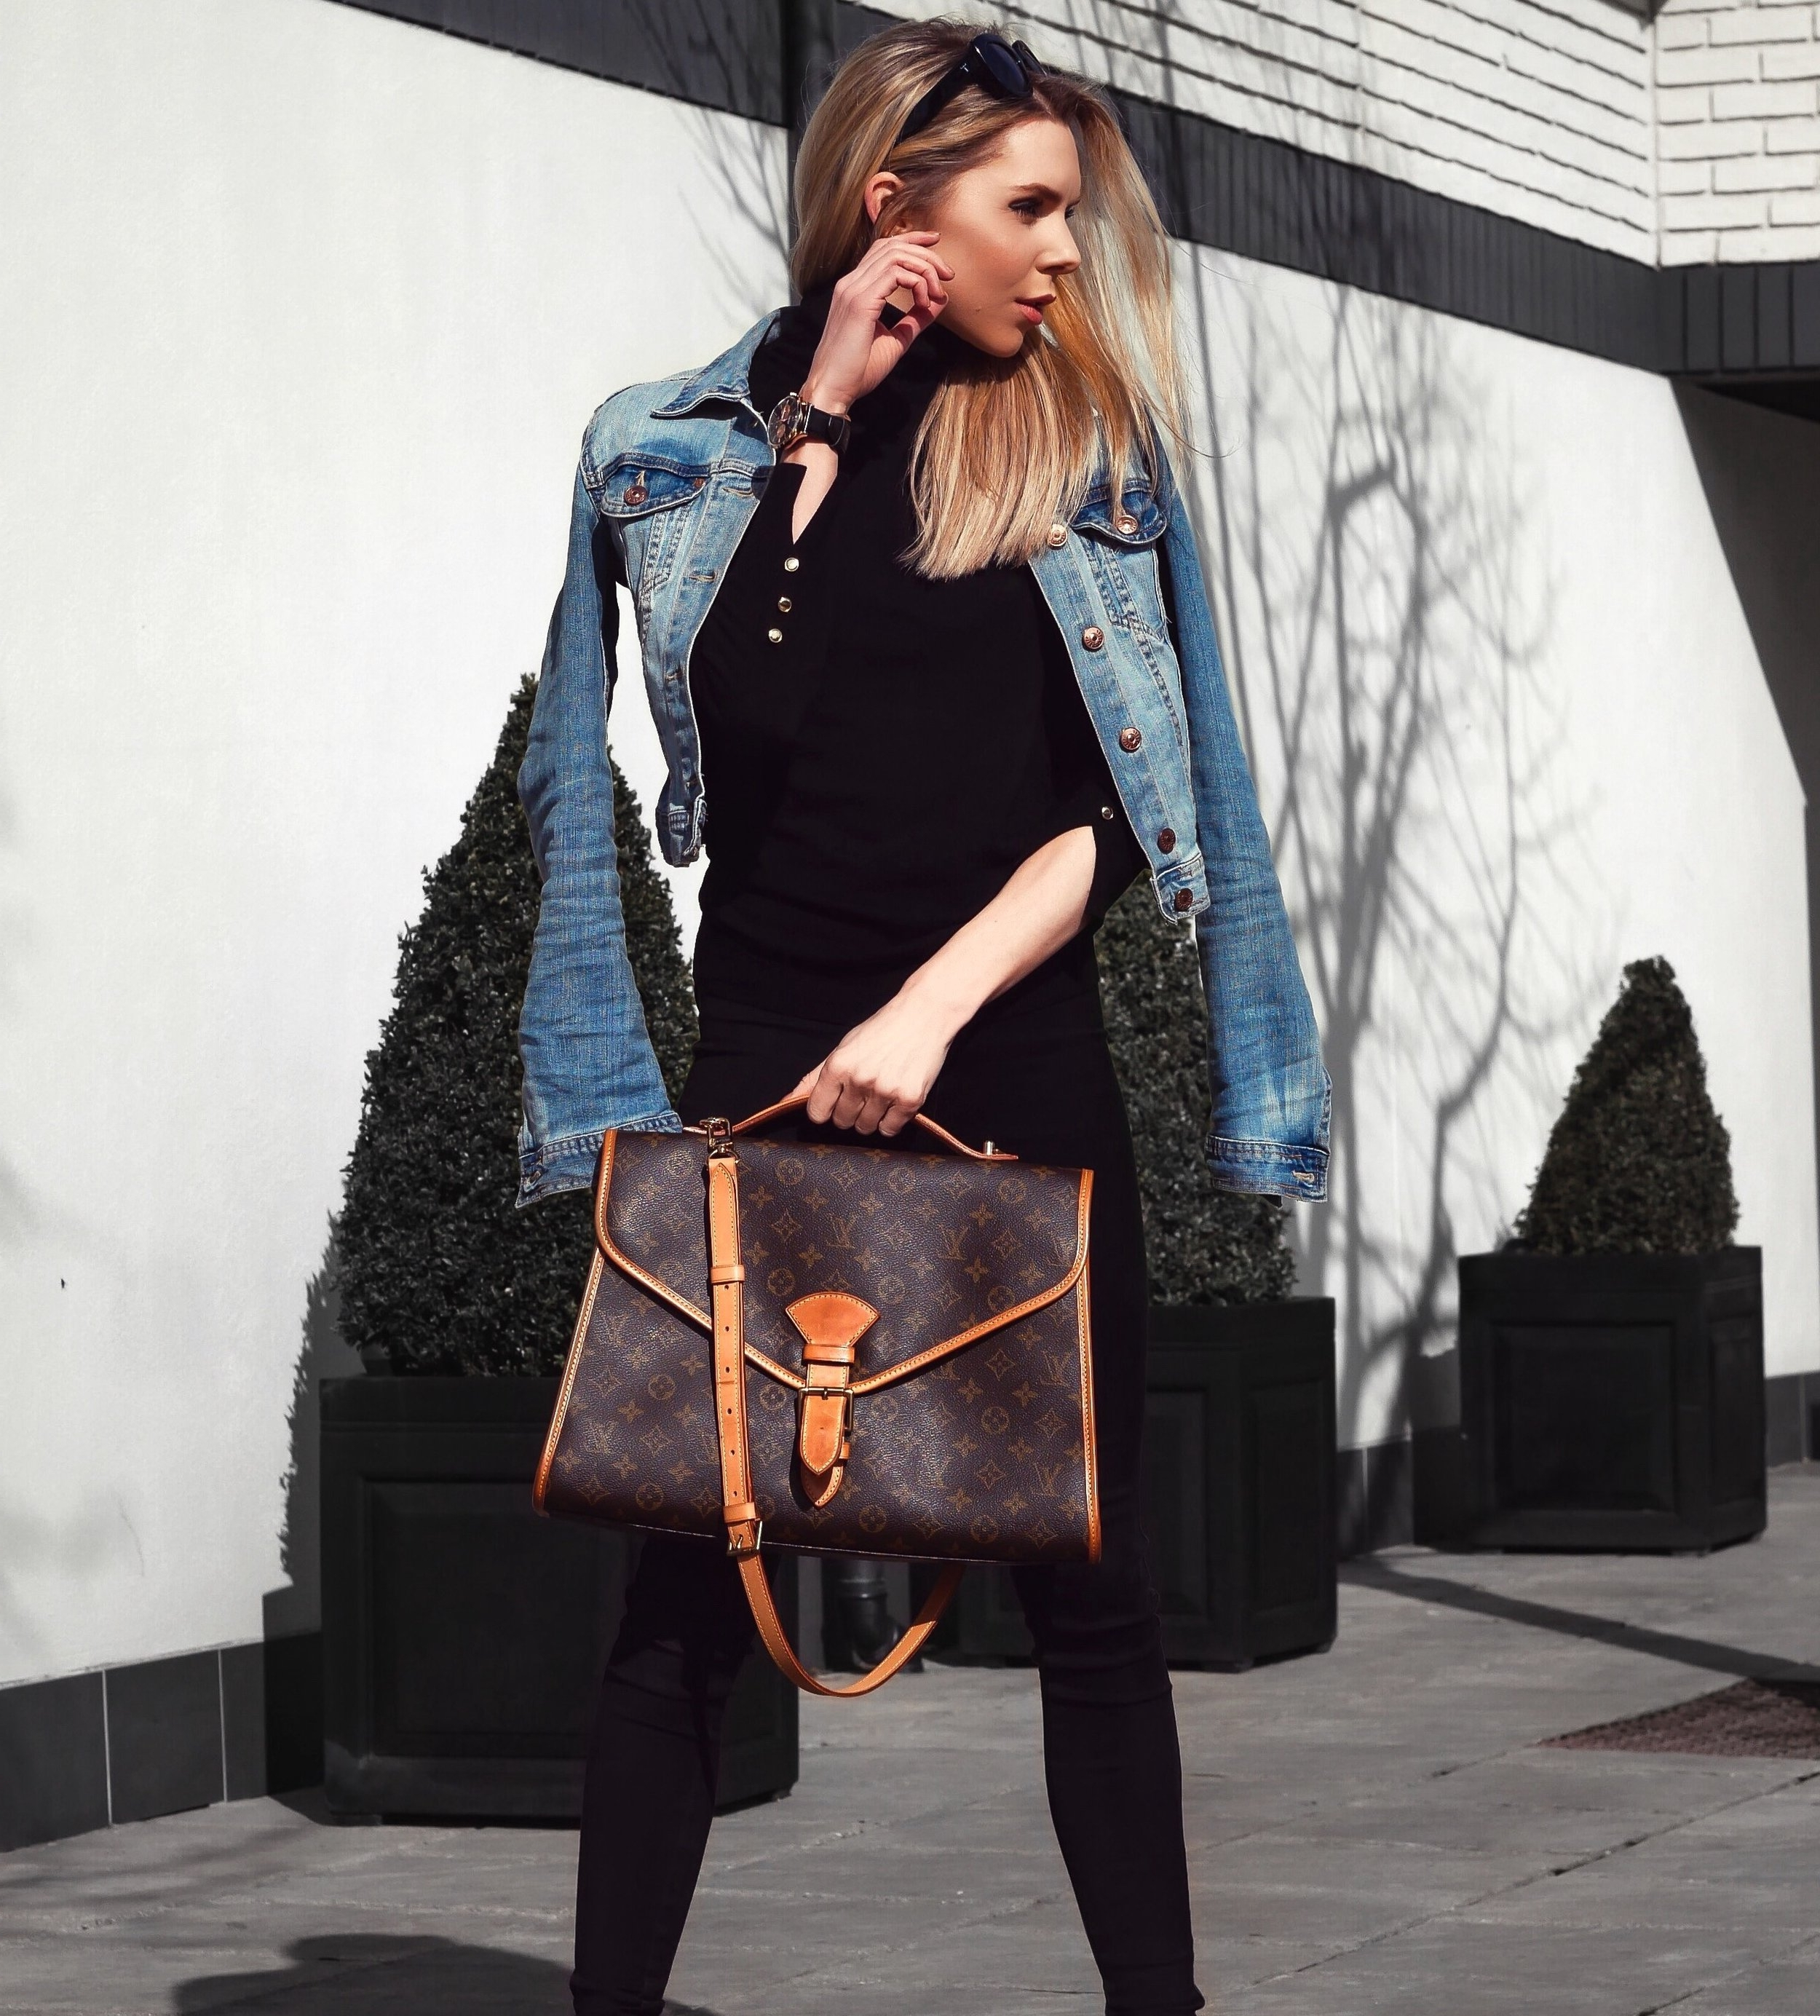 haul, affordable fashion, streetstyle, inspiration, what to wear, fashion, lookbook, style, fashion blogger, laura blair, youtuber, london fashion girl, louis vuitton, uncloset uk